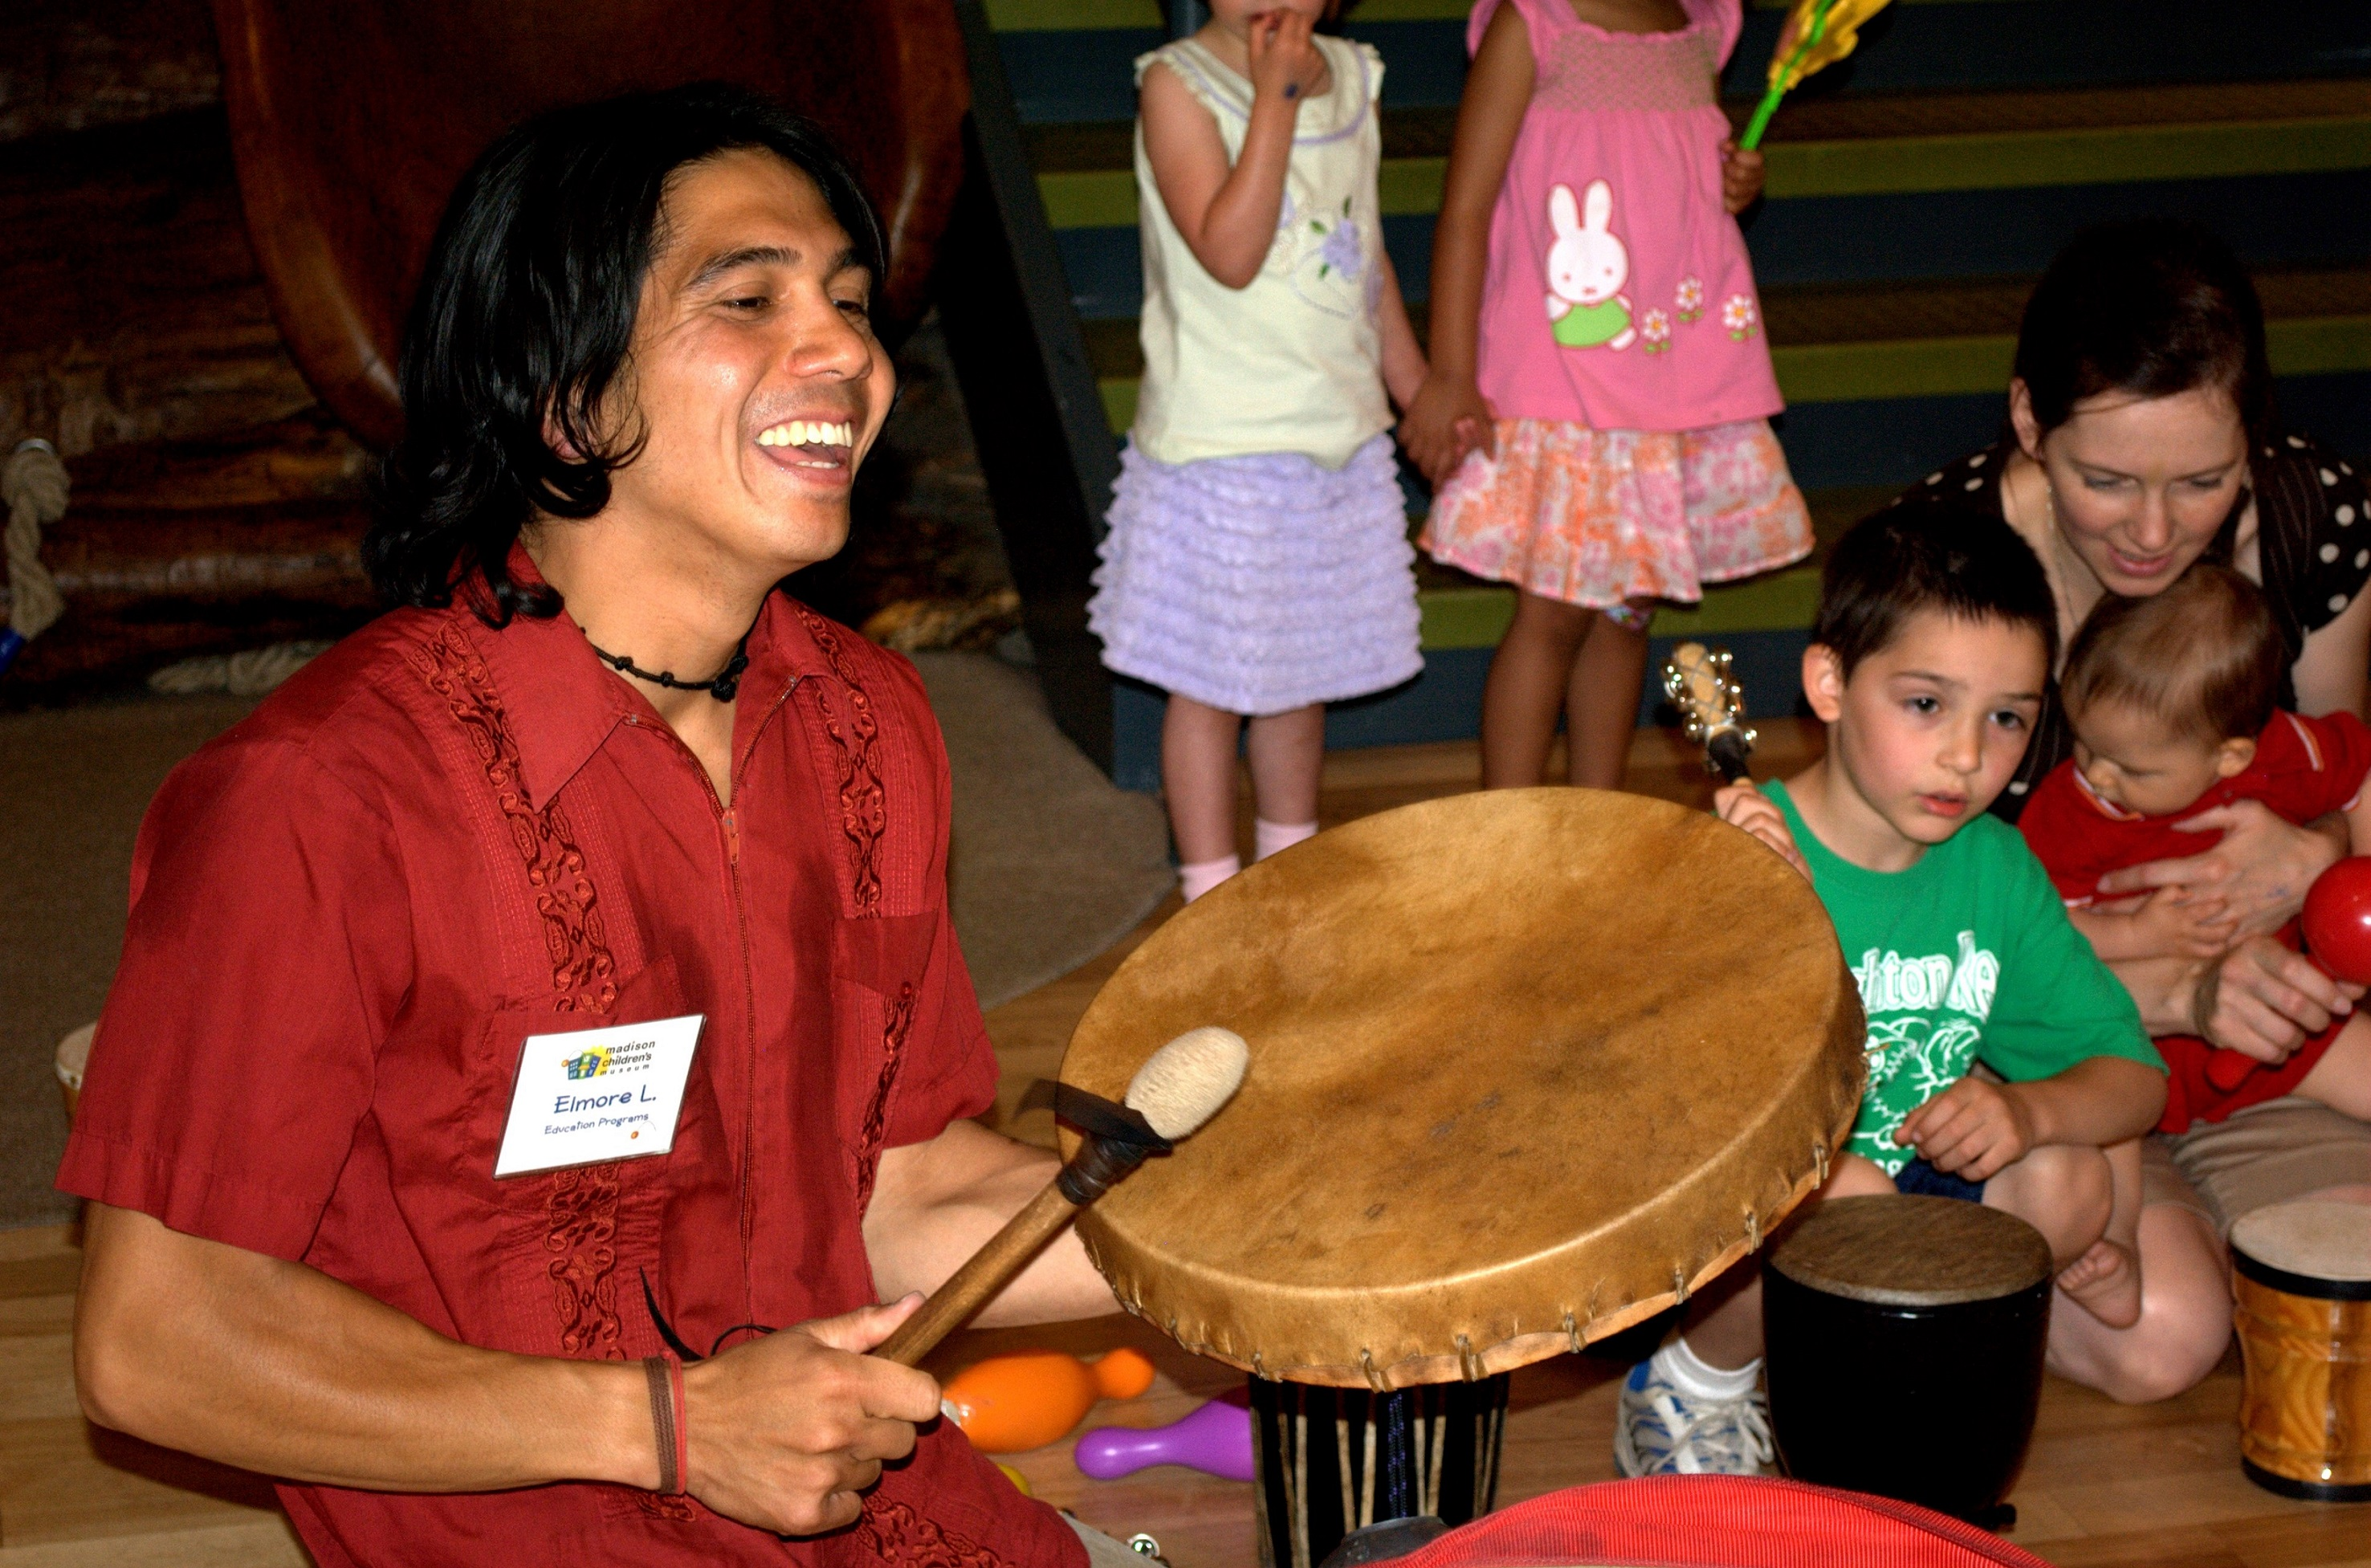 Elmore Lawson leads a drum circle with kids